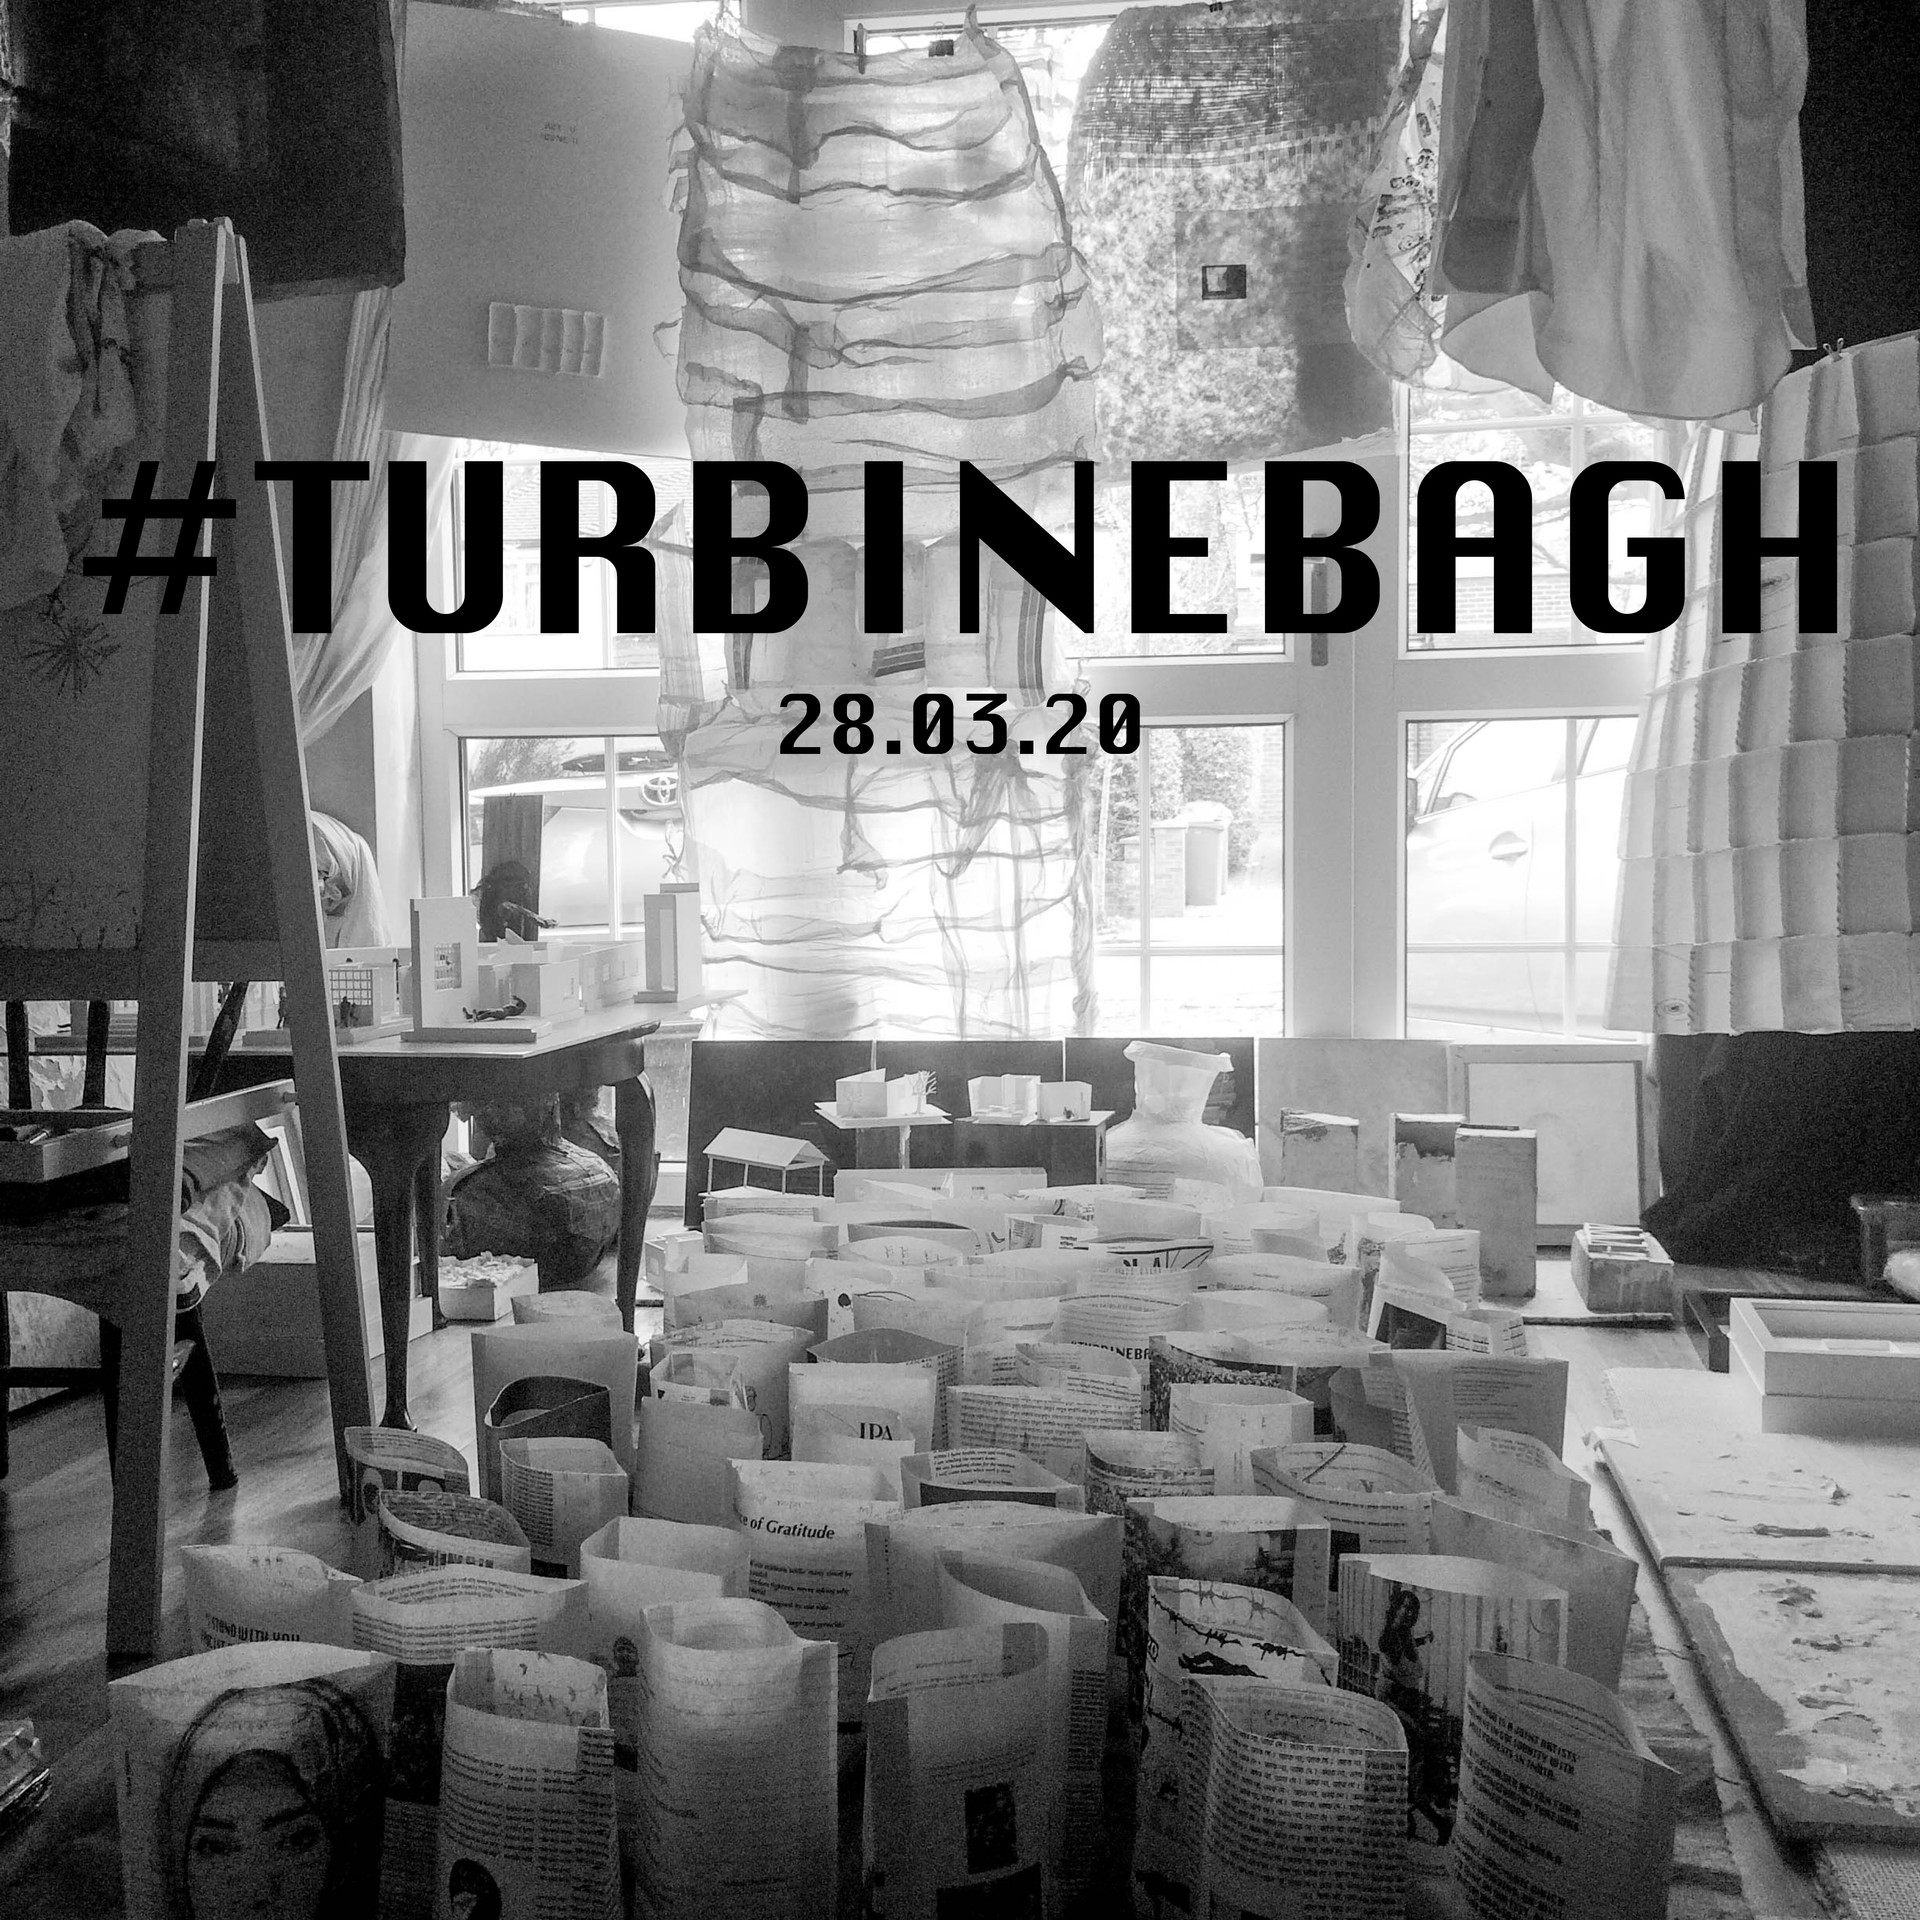 1. Turbine Bagh is a joint artists' movement against fascism in India. It was built around a peaceful protest that was due to be held in the Turbine Hall of Tate Modern museum, London. The event is postponed due to COVOD-19, but the movement continues.